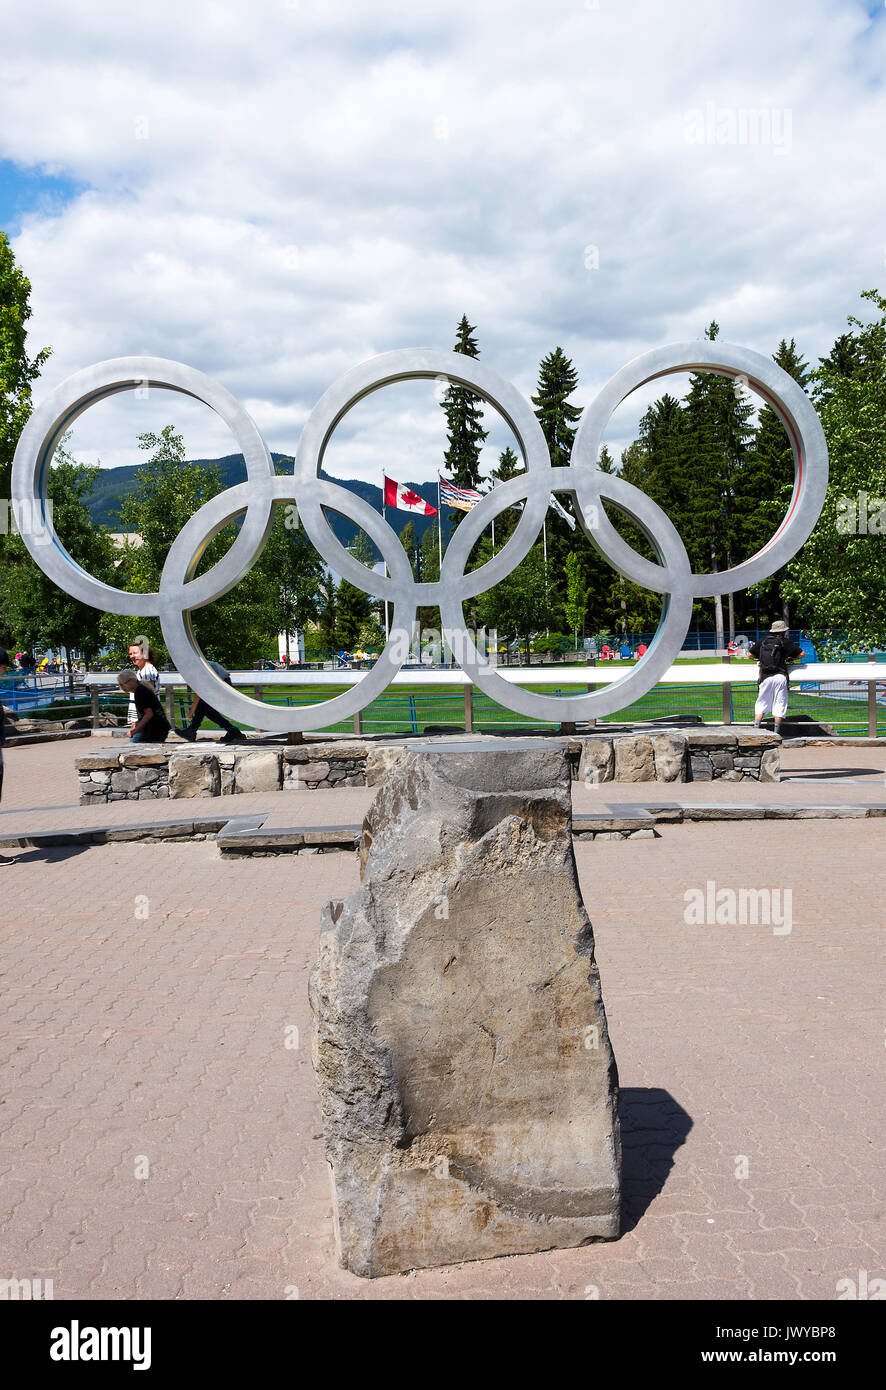 The Symbol of Five Olympic Rings for The Winter Olympic Games of 2010 in the Town of Whistler British Columbia Canada Stock Photo